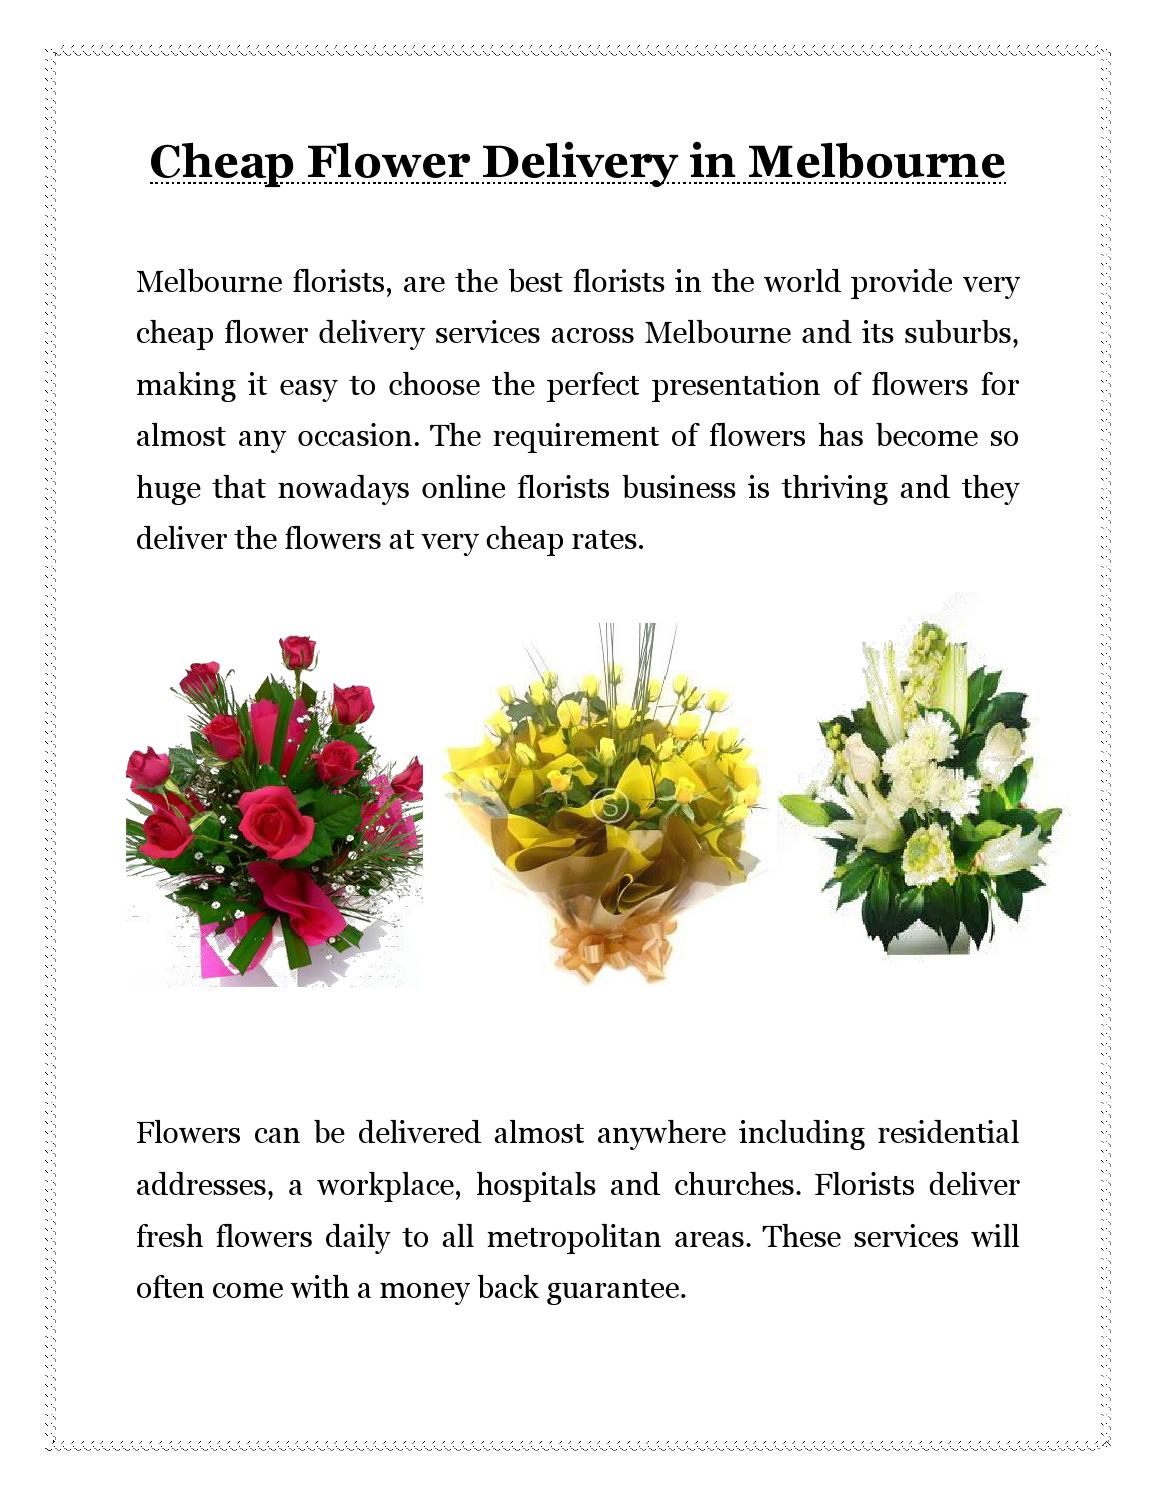 Cheap flower delivery in melbourne by thanks a bunch florist issuu izmirmasajfo Gallery